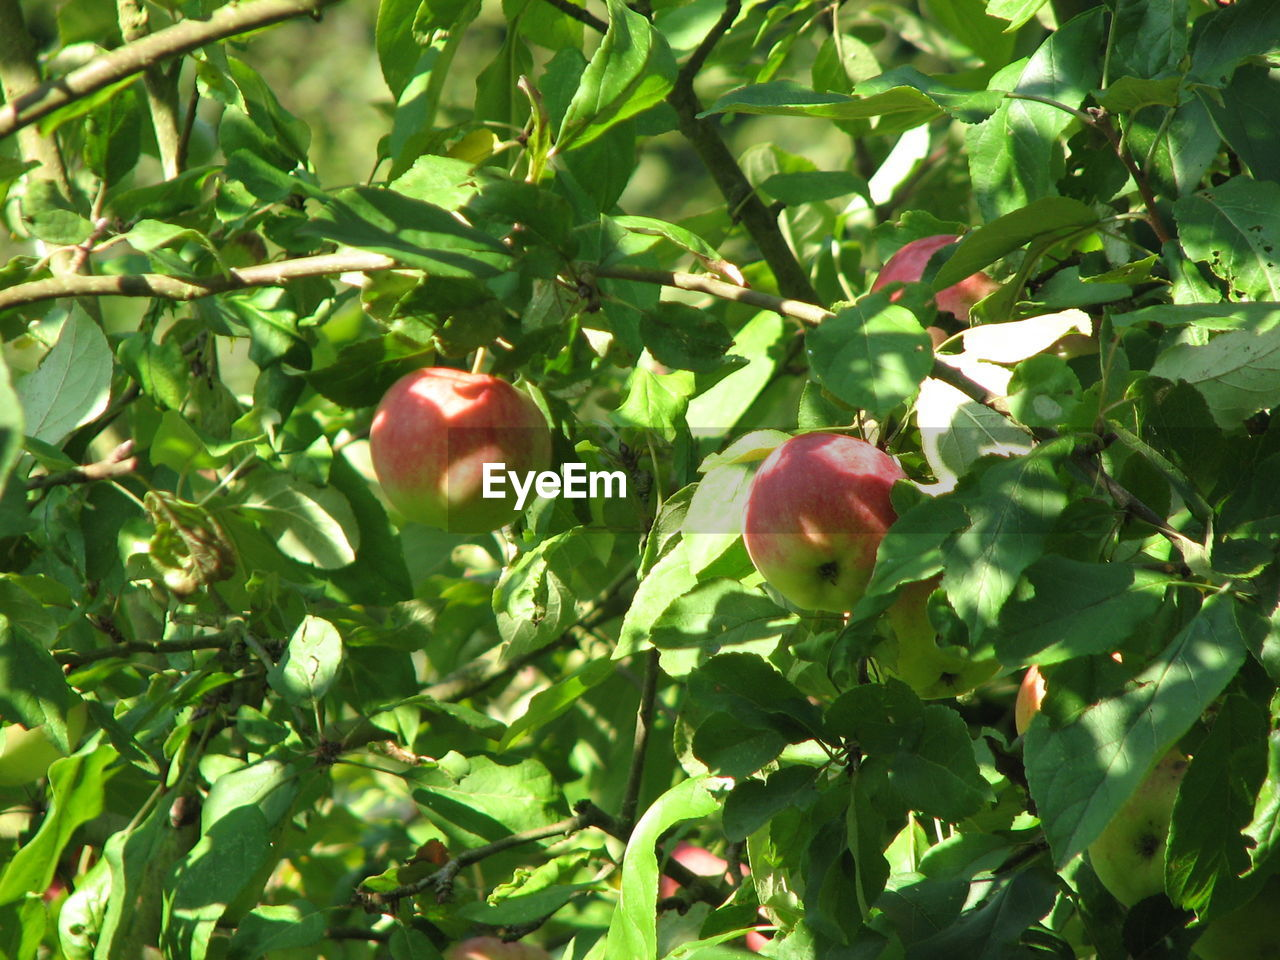 fruit, food and drink, red, growth, food, tree, healthy eating, outdoors, apple - fruit, nature, green color, freshness, leaf, day, branch, no people, pomegranate, sunlight, low angle view, beauty in nature, close-up